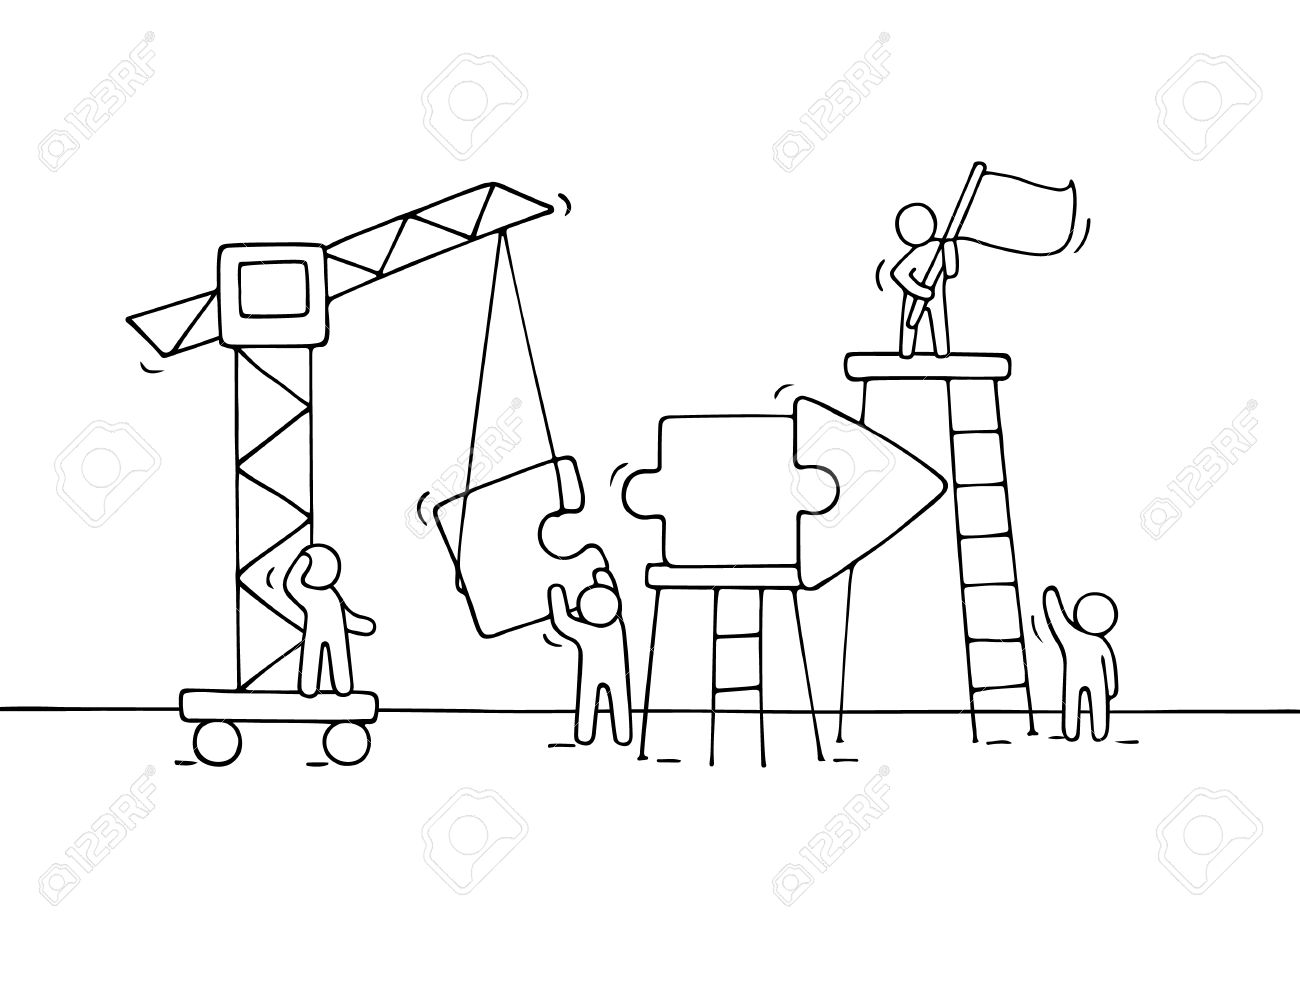 1300x988 Sketch Of Working Little People With Arrow, Teamwork. Doodle